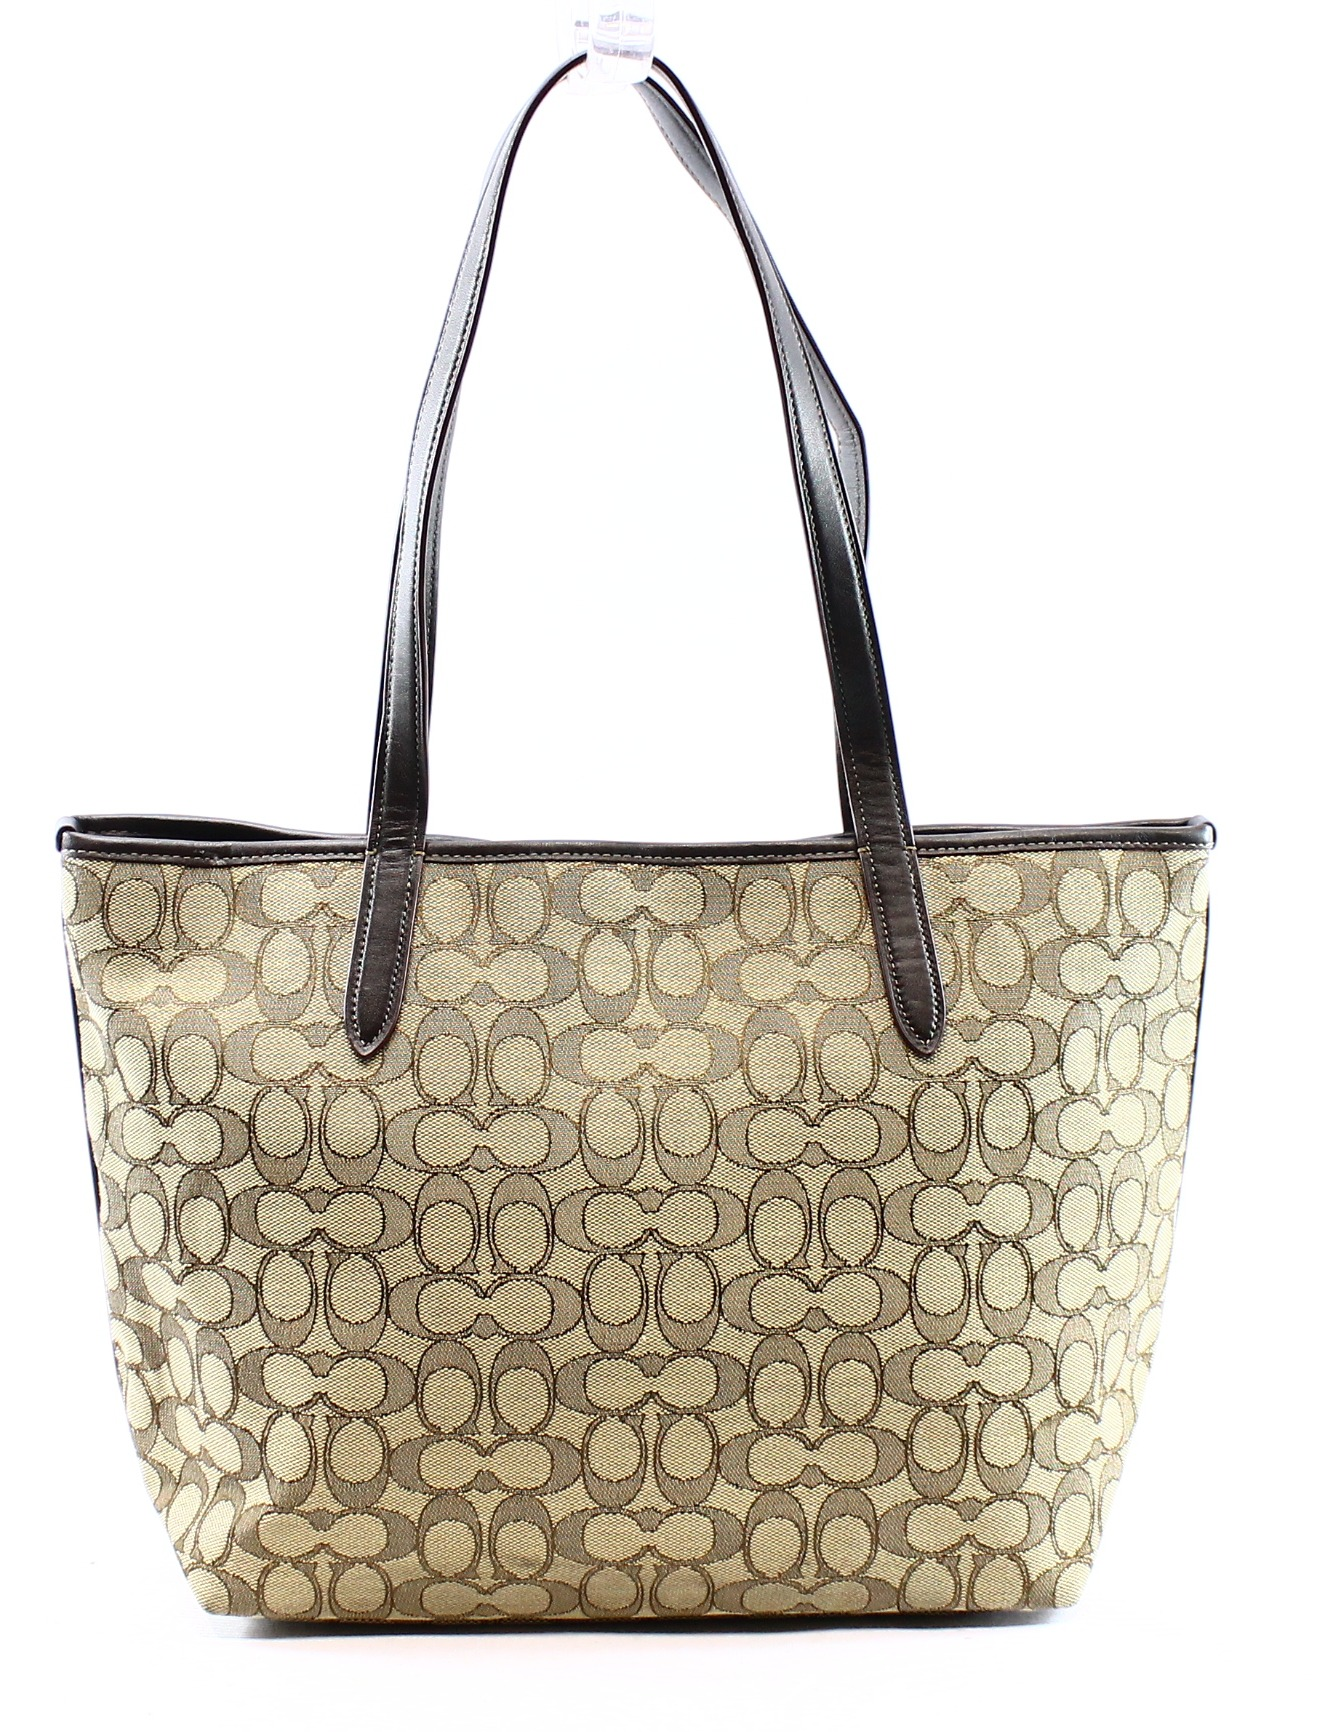 coach poppy handbags outlet  category:handbags